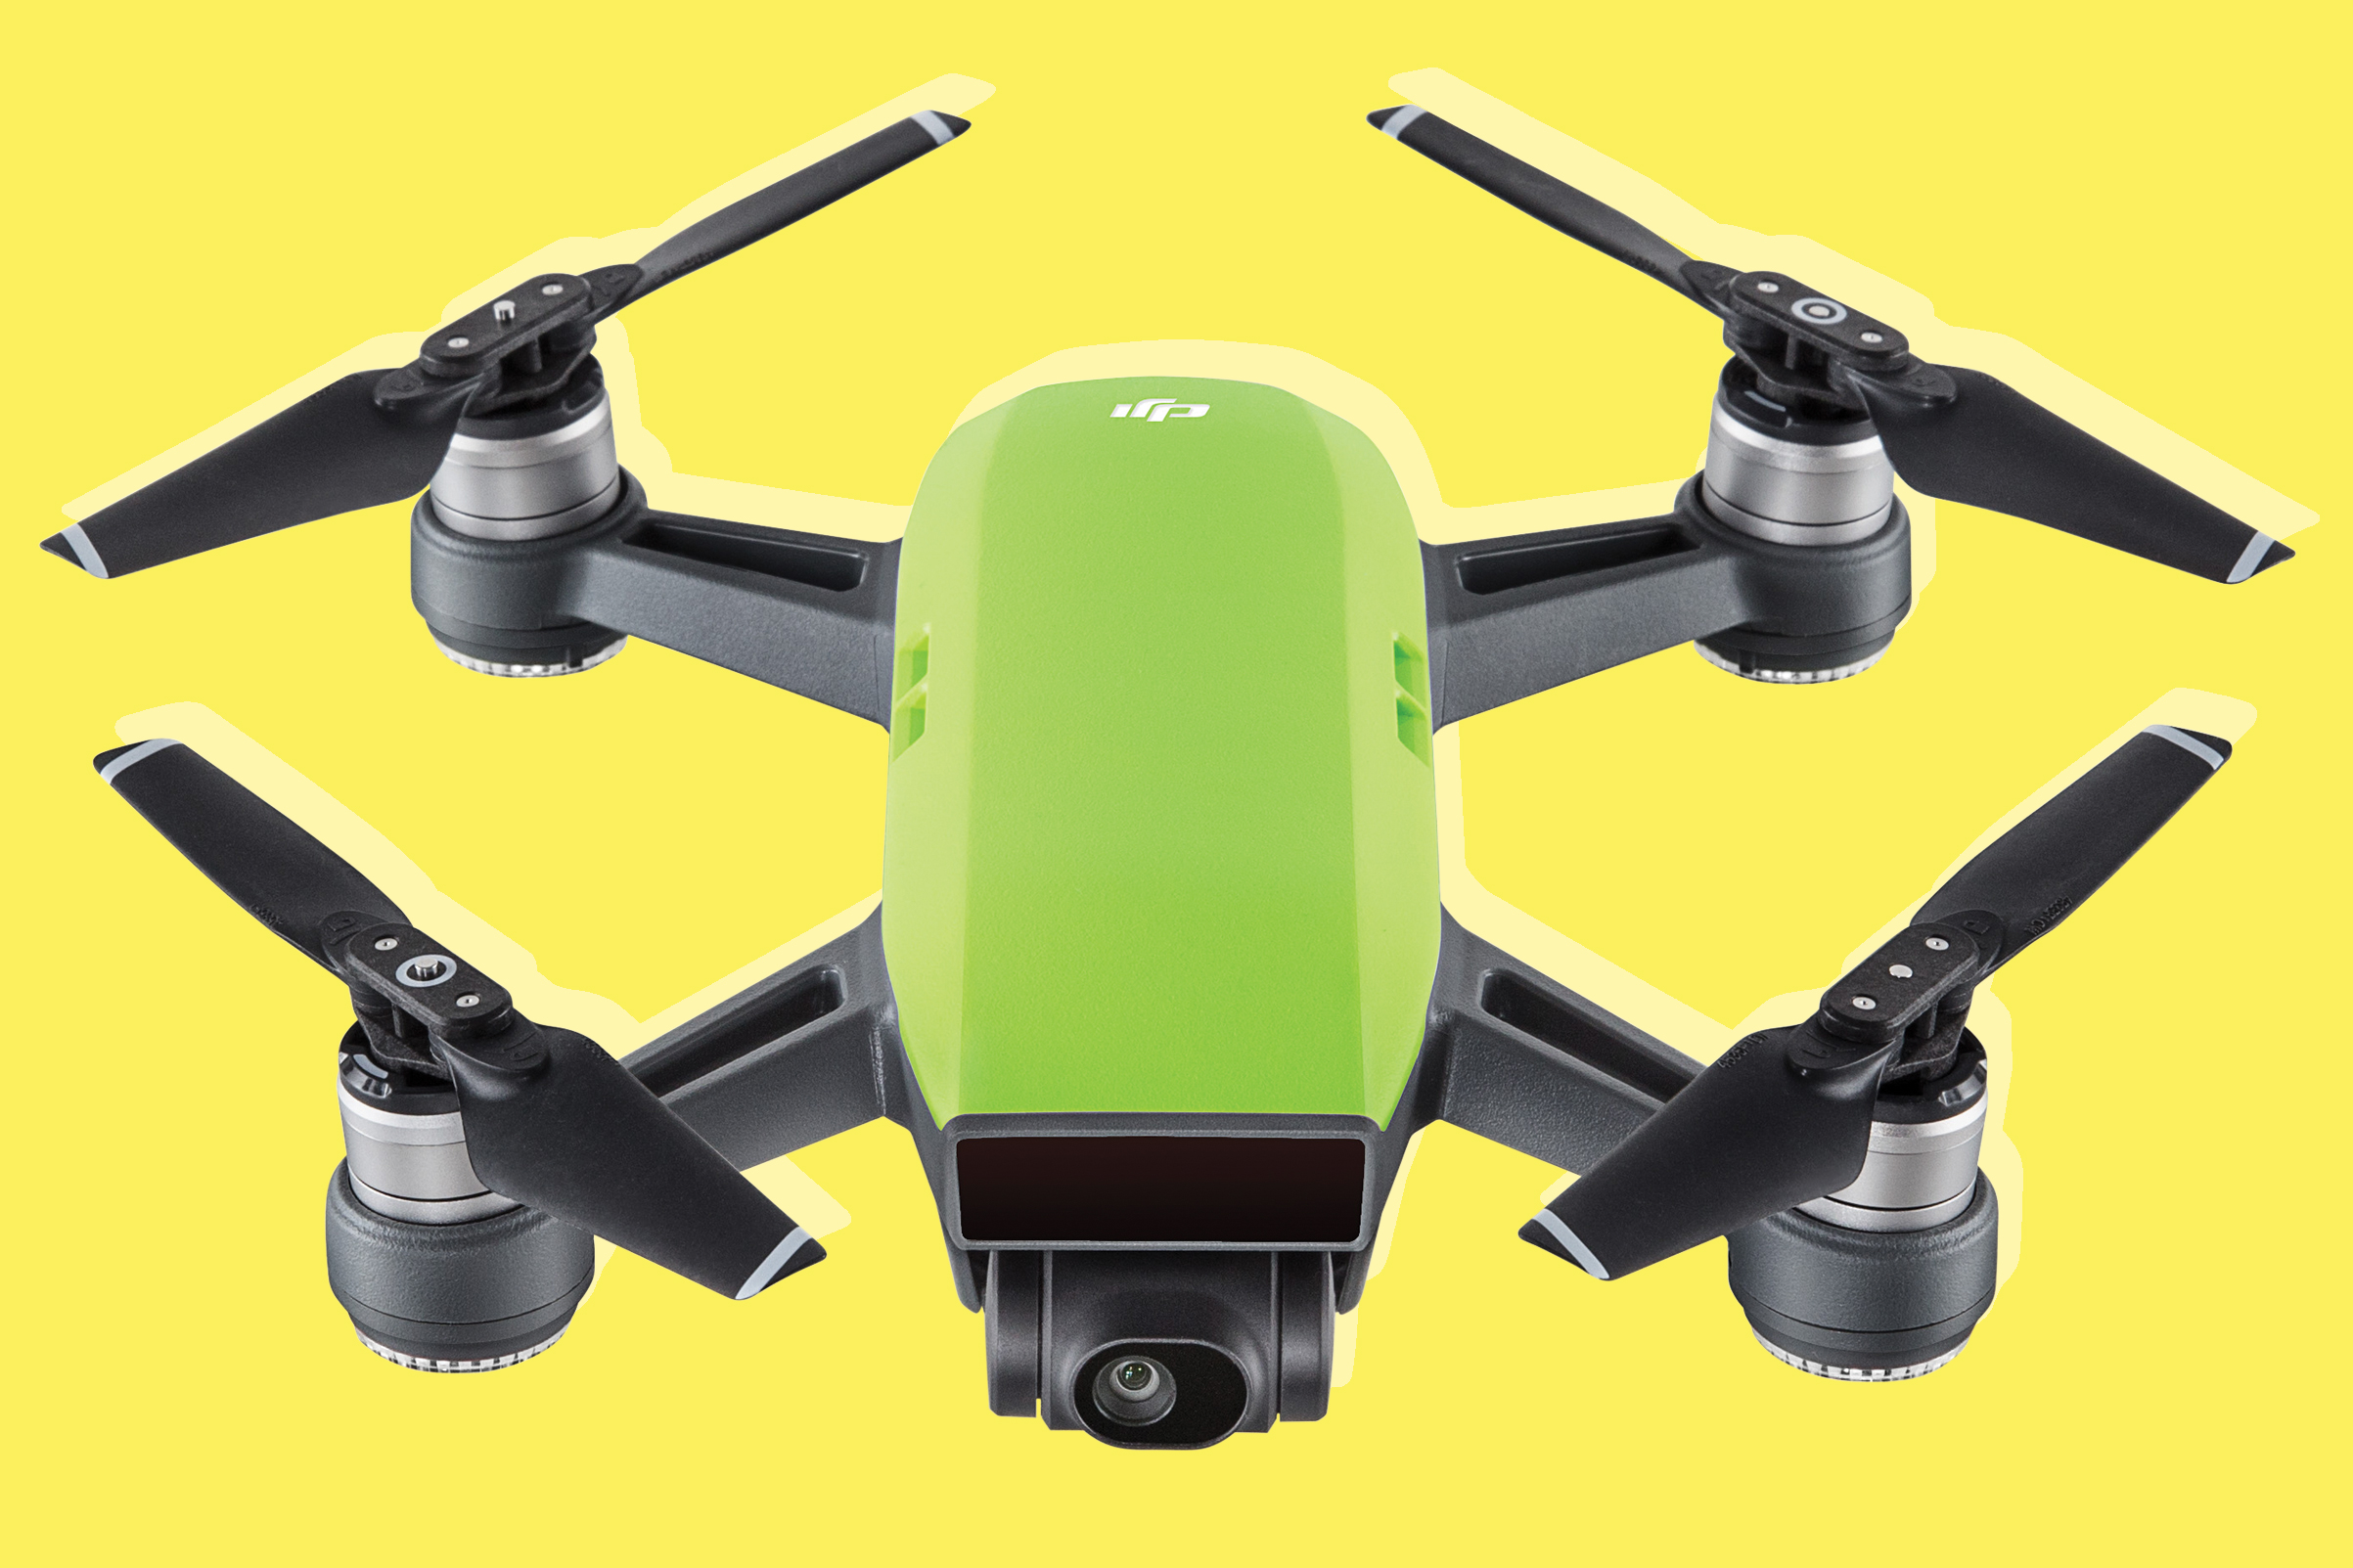 The DJI Spark is one of the best inventions of 2017